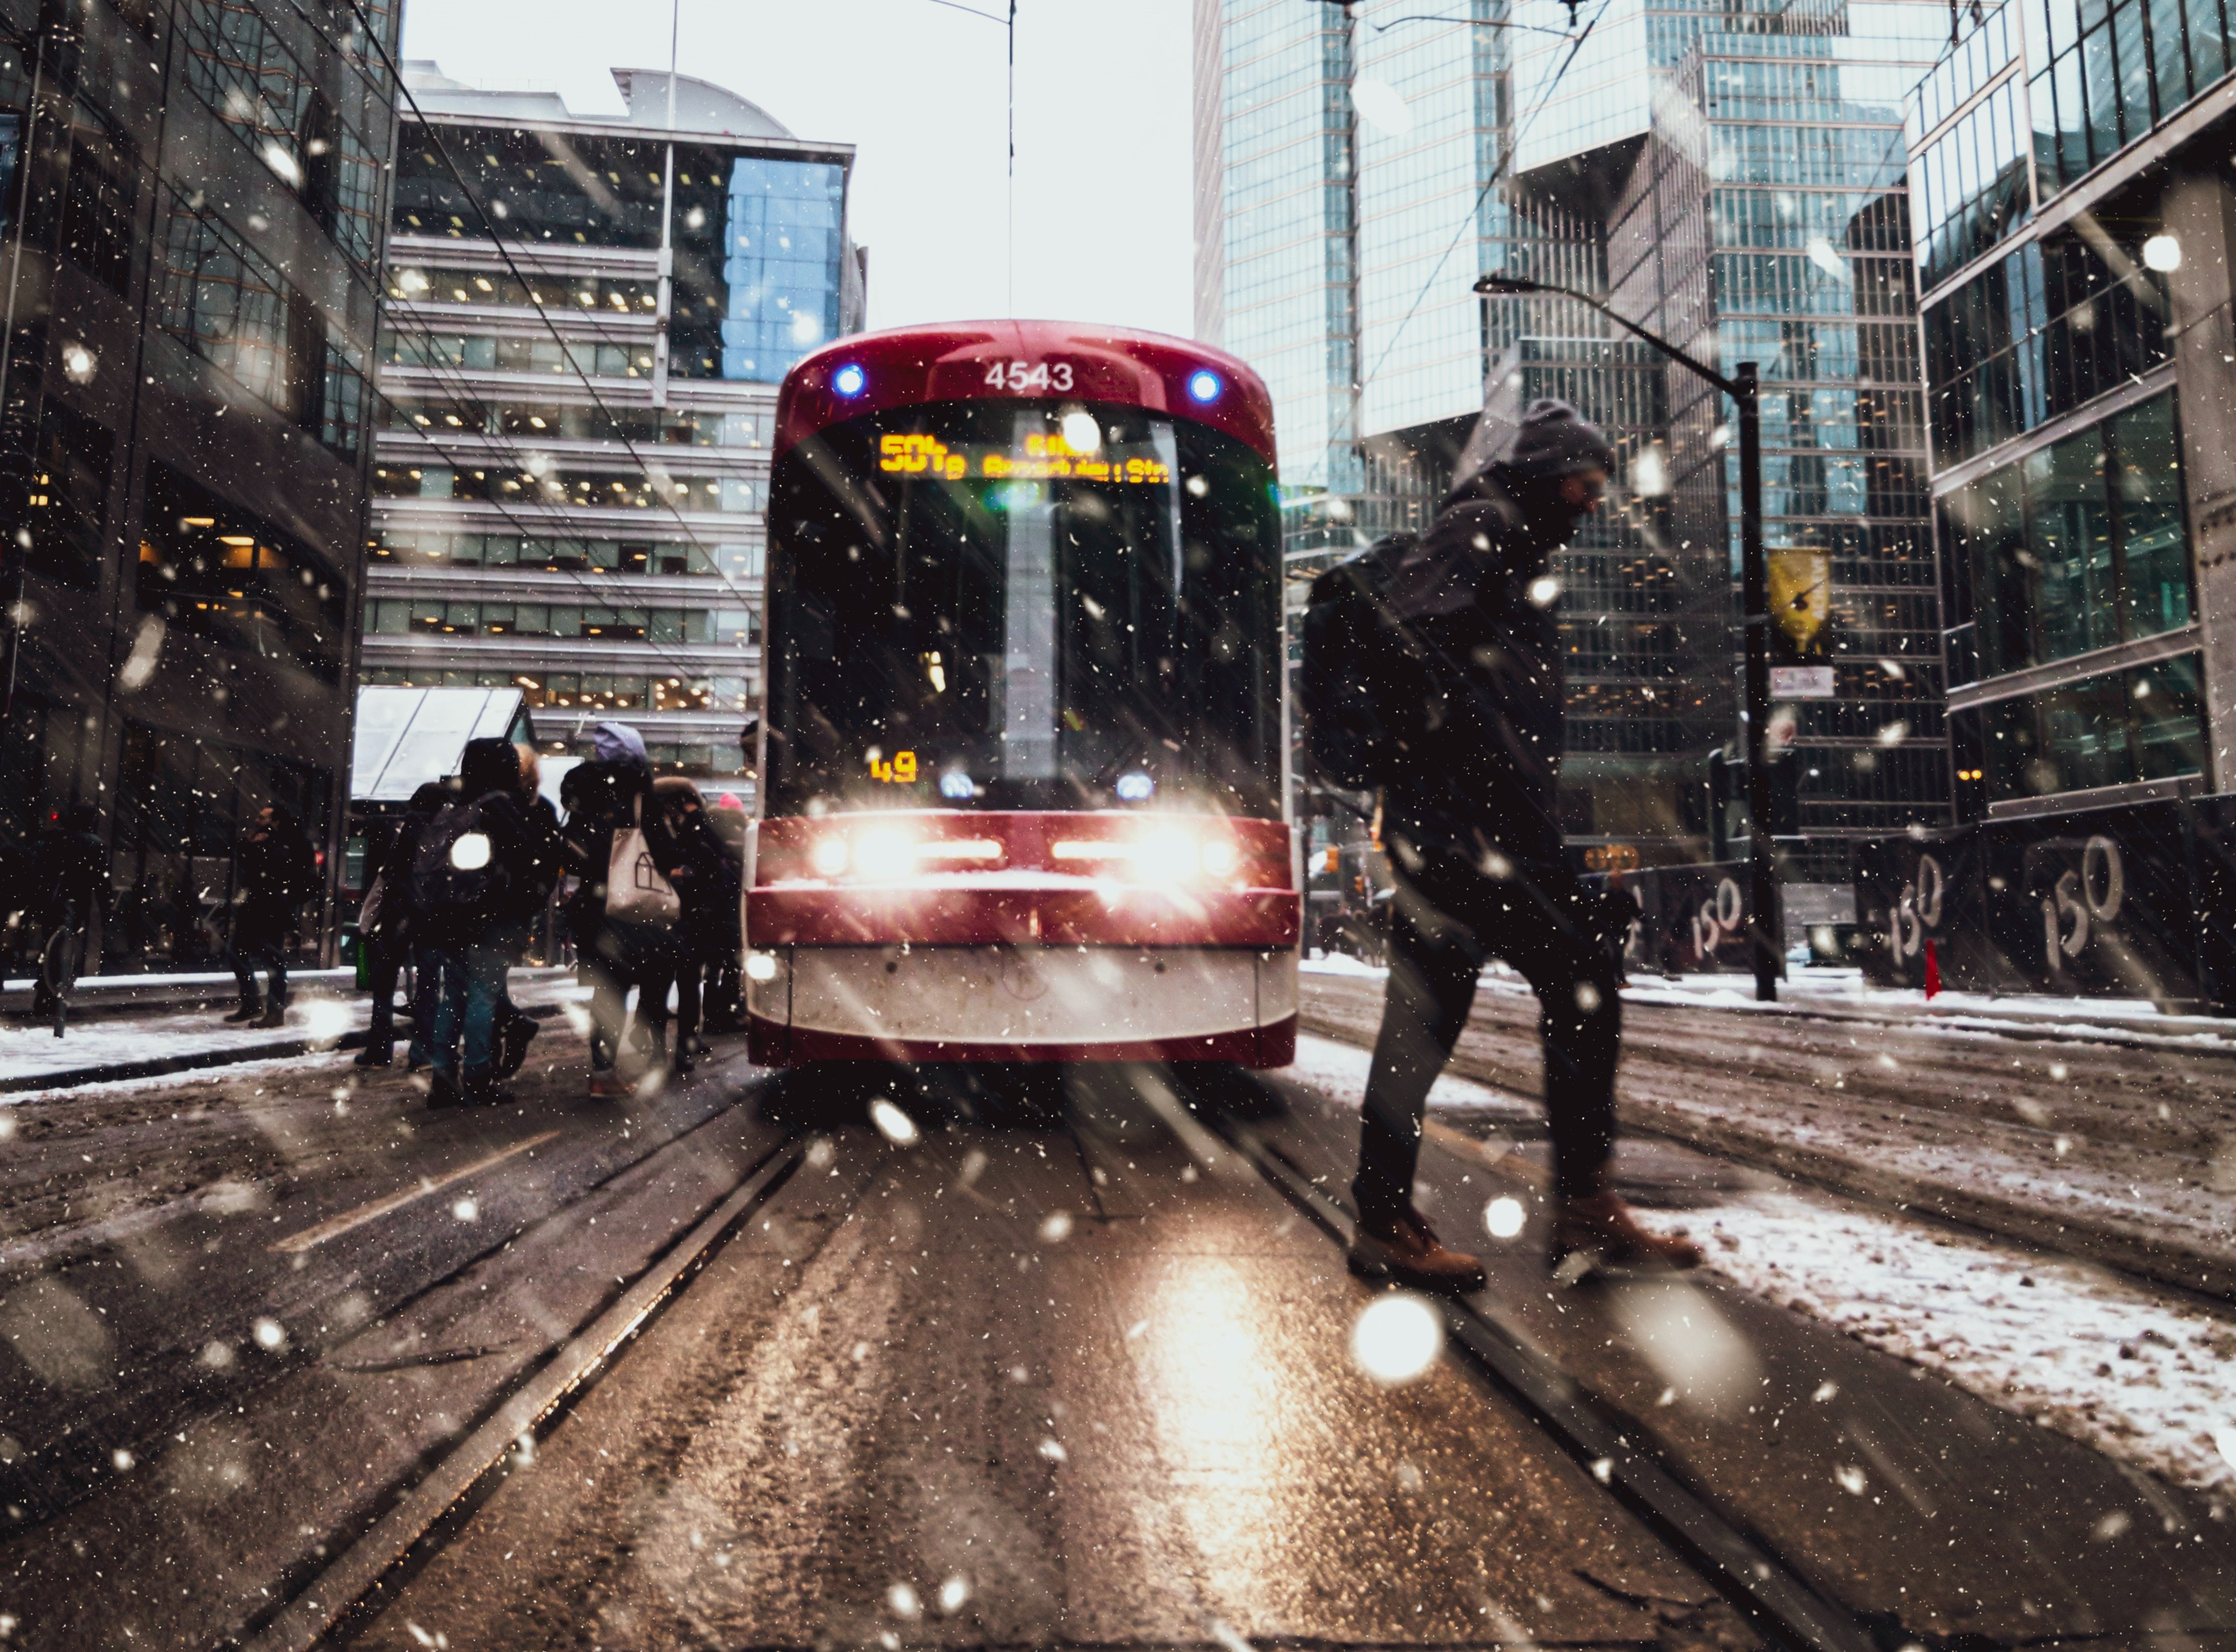 Traffic in the snow 2025AD